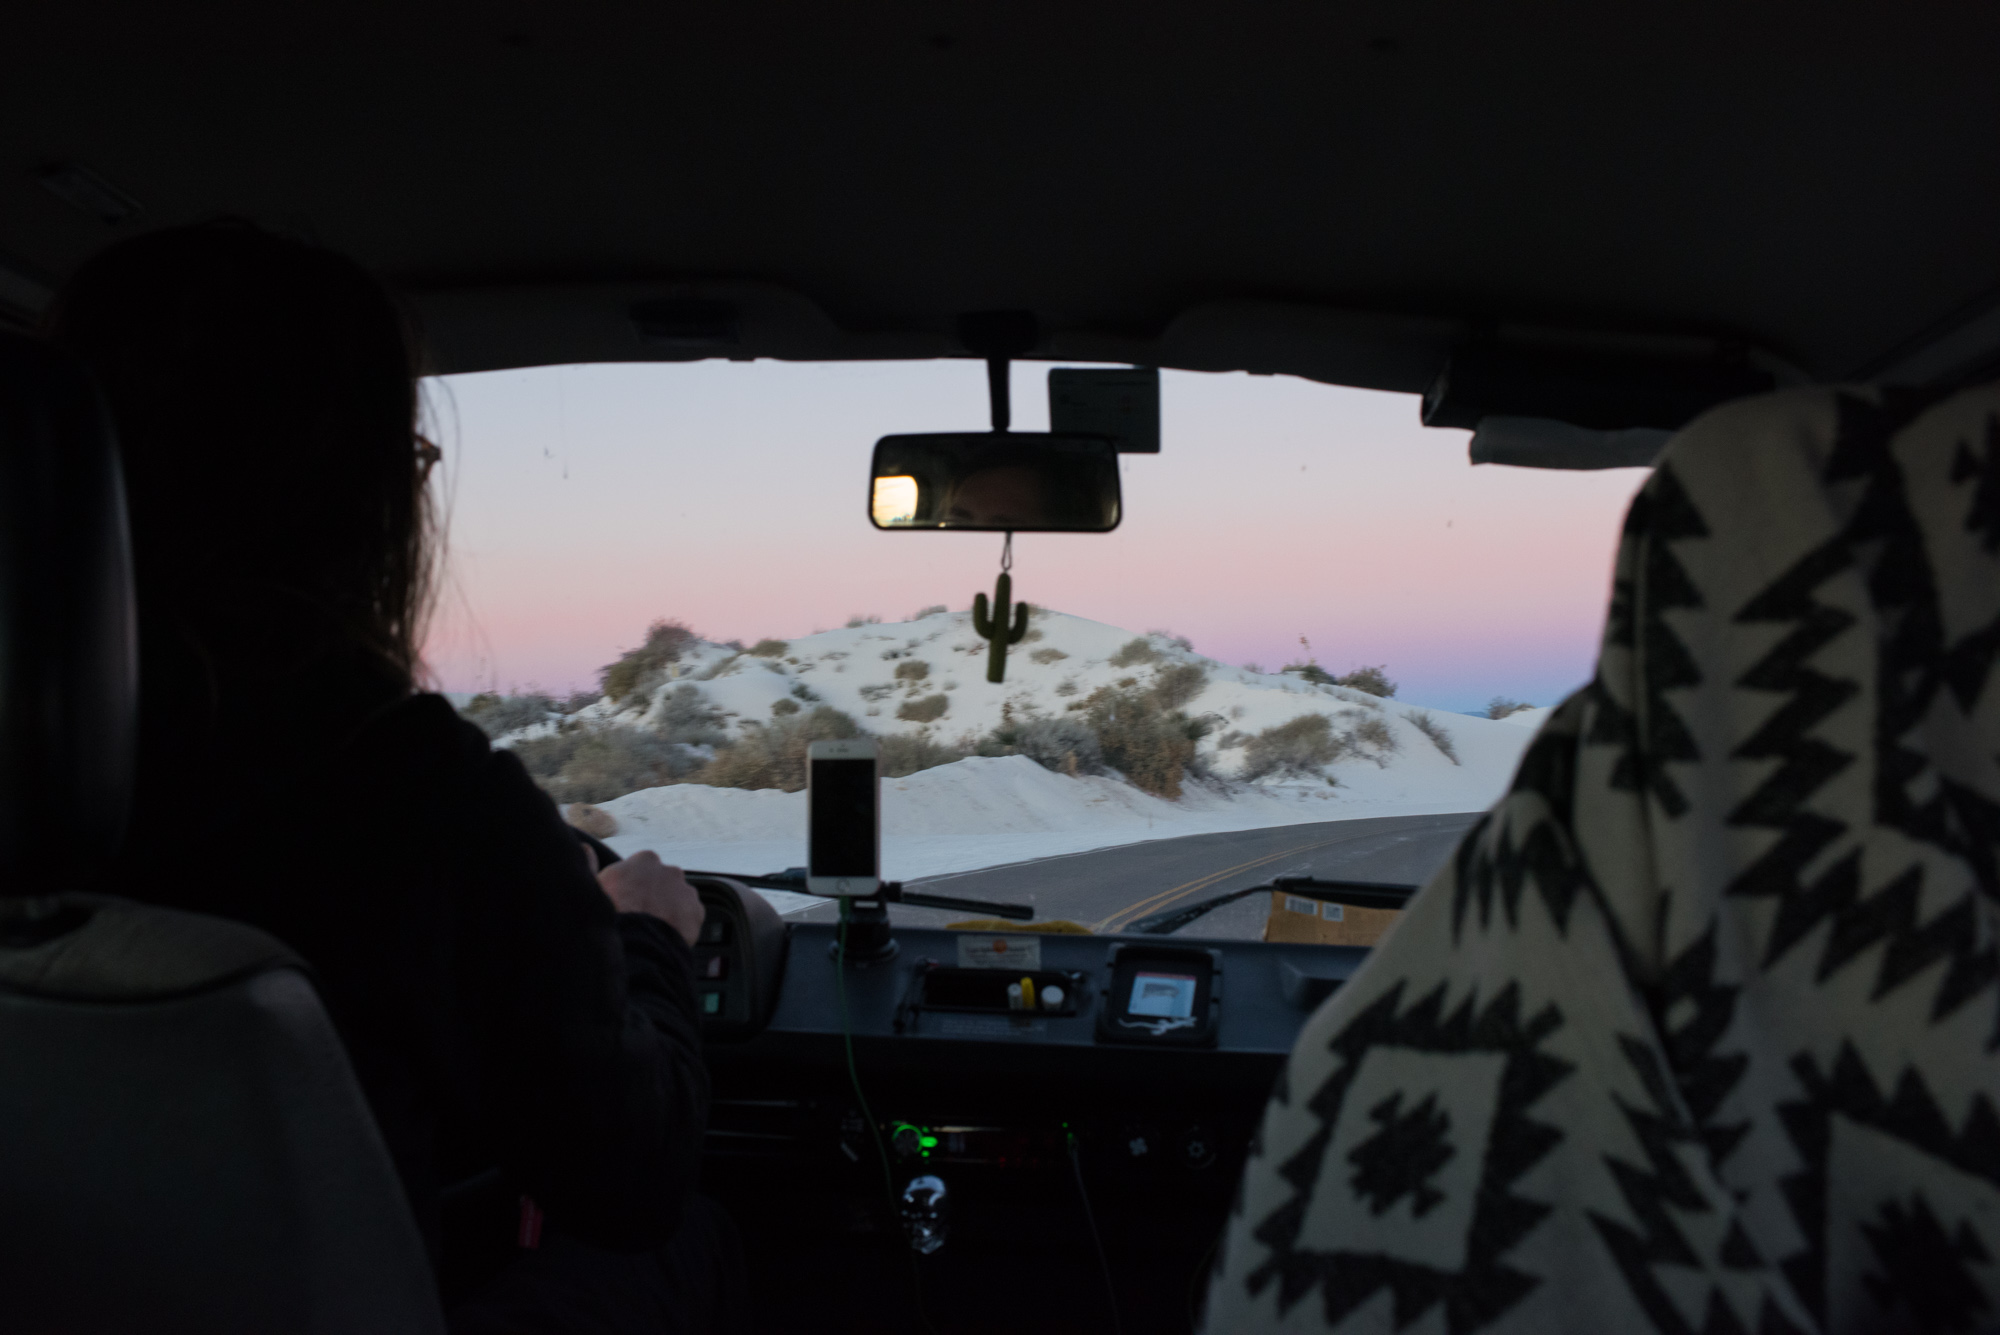 We left our free campsite in the dark in order to make it into White Sands for the 7am opening time and sunrise.